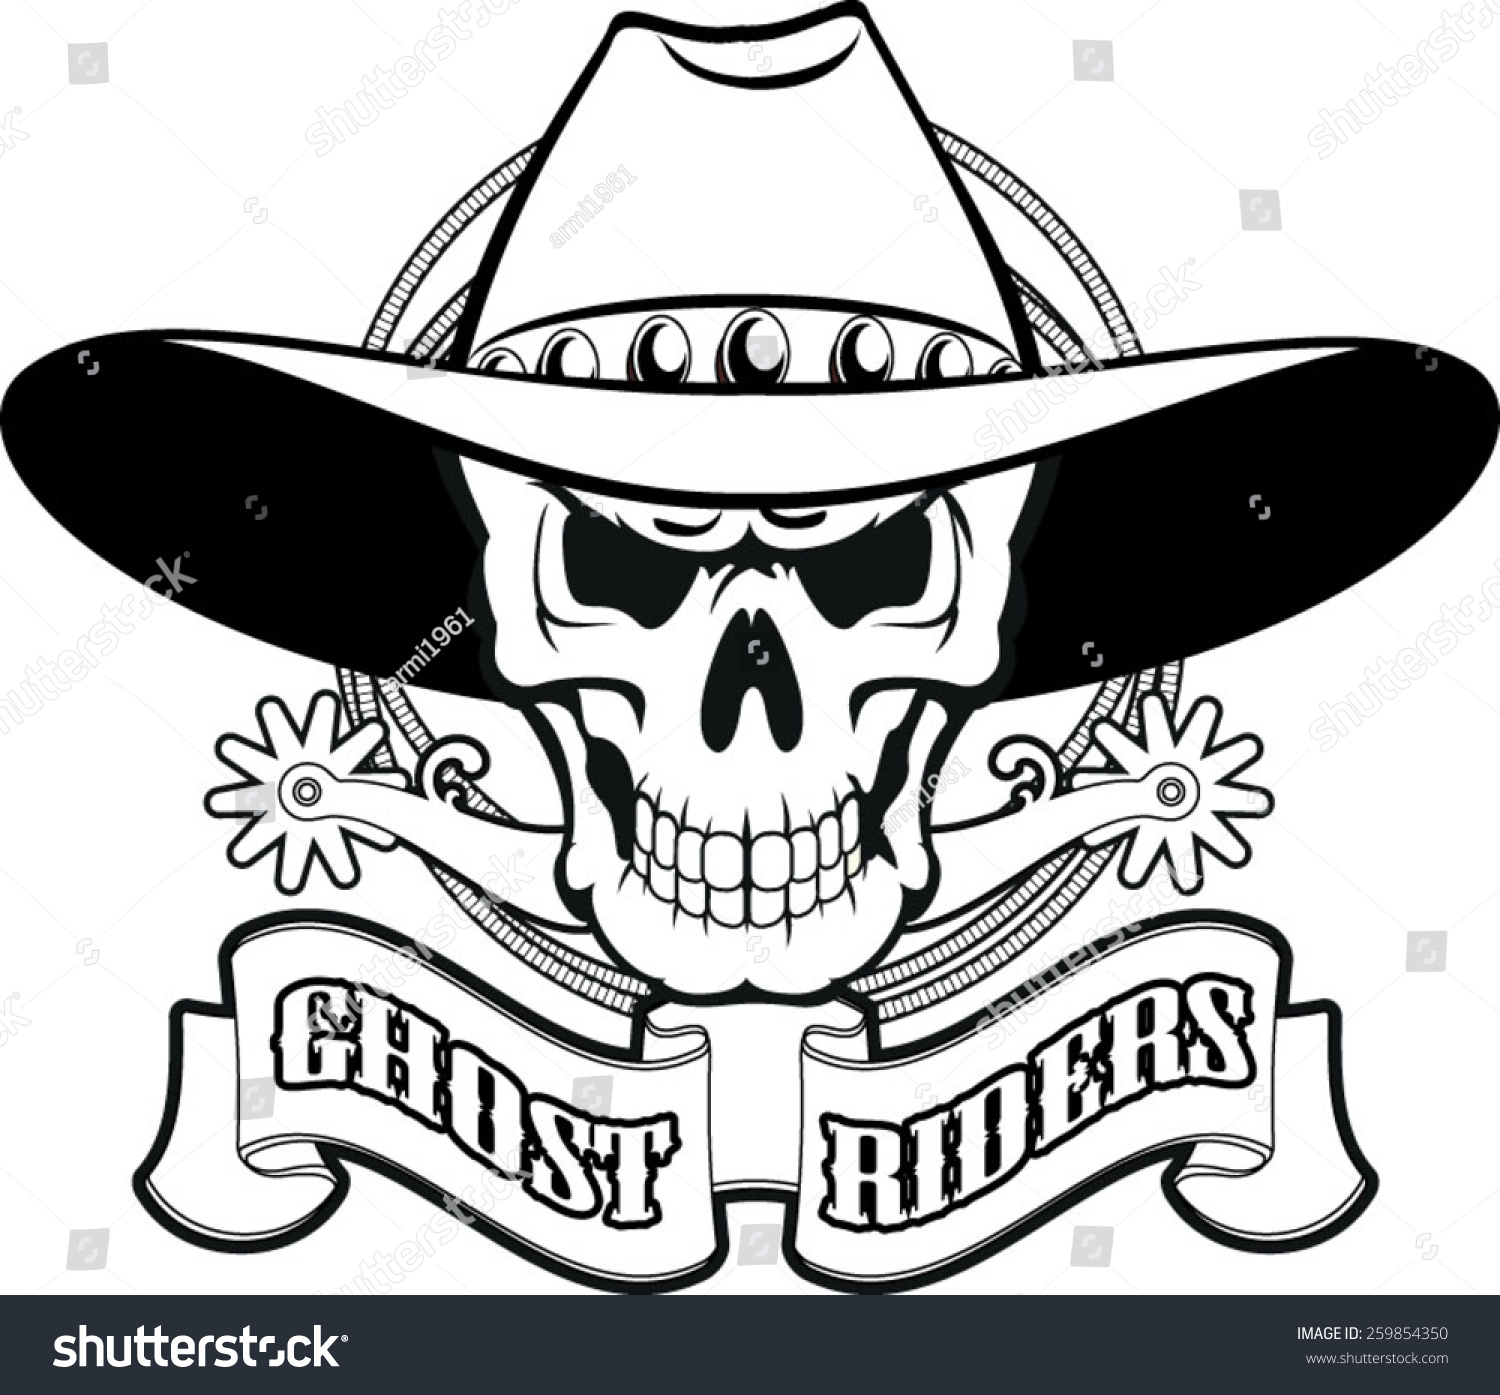 Cowboy skull spurs lasso text ghost stock vector 259854350 cowboy skull with spurs lasso and text ghost riders buycottarizona Images